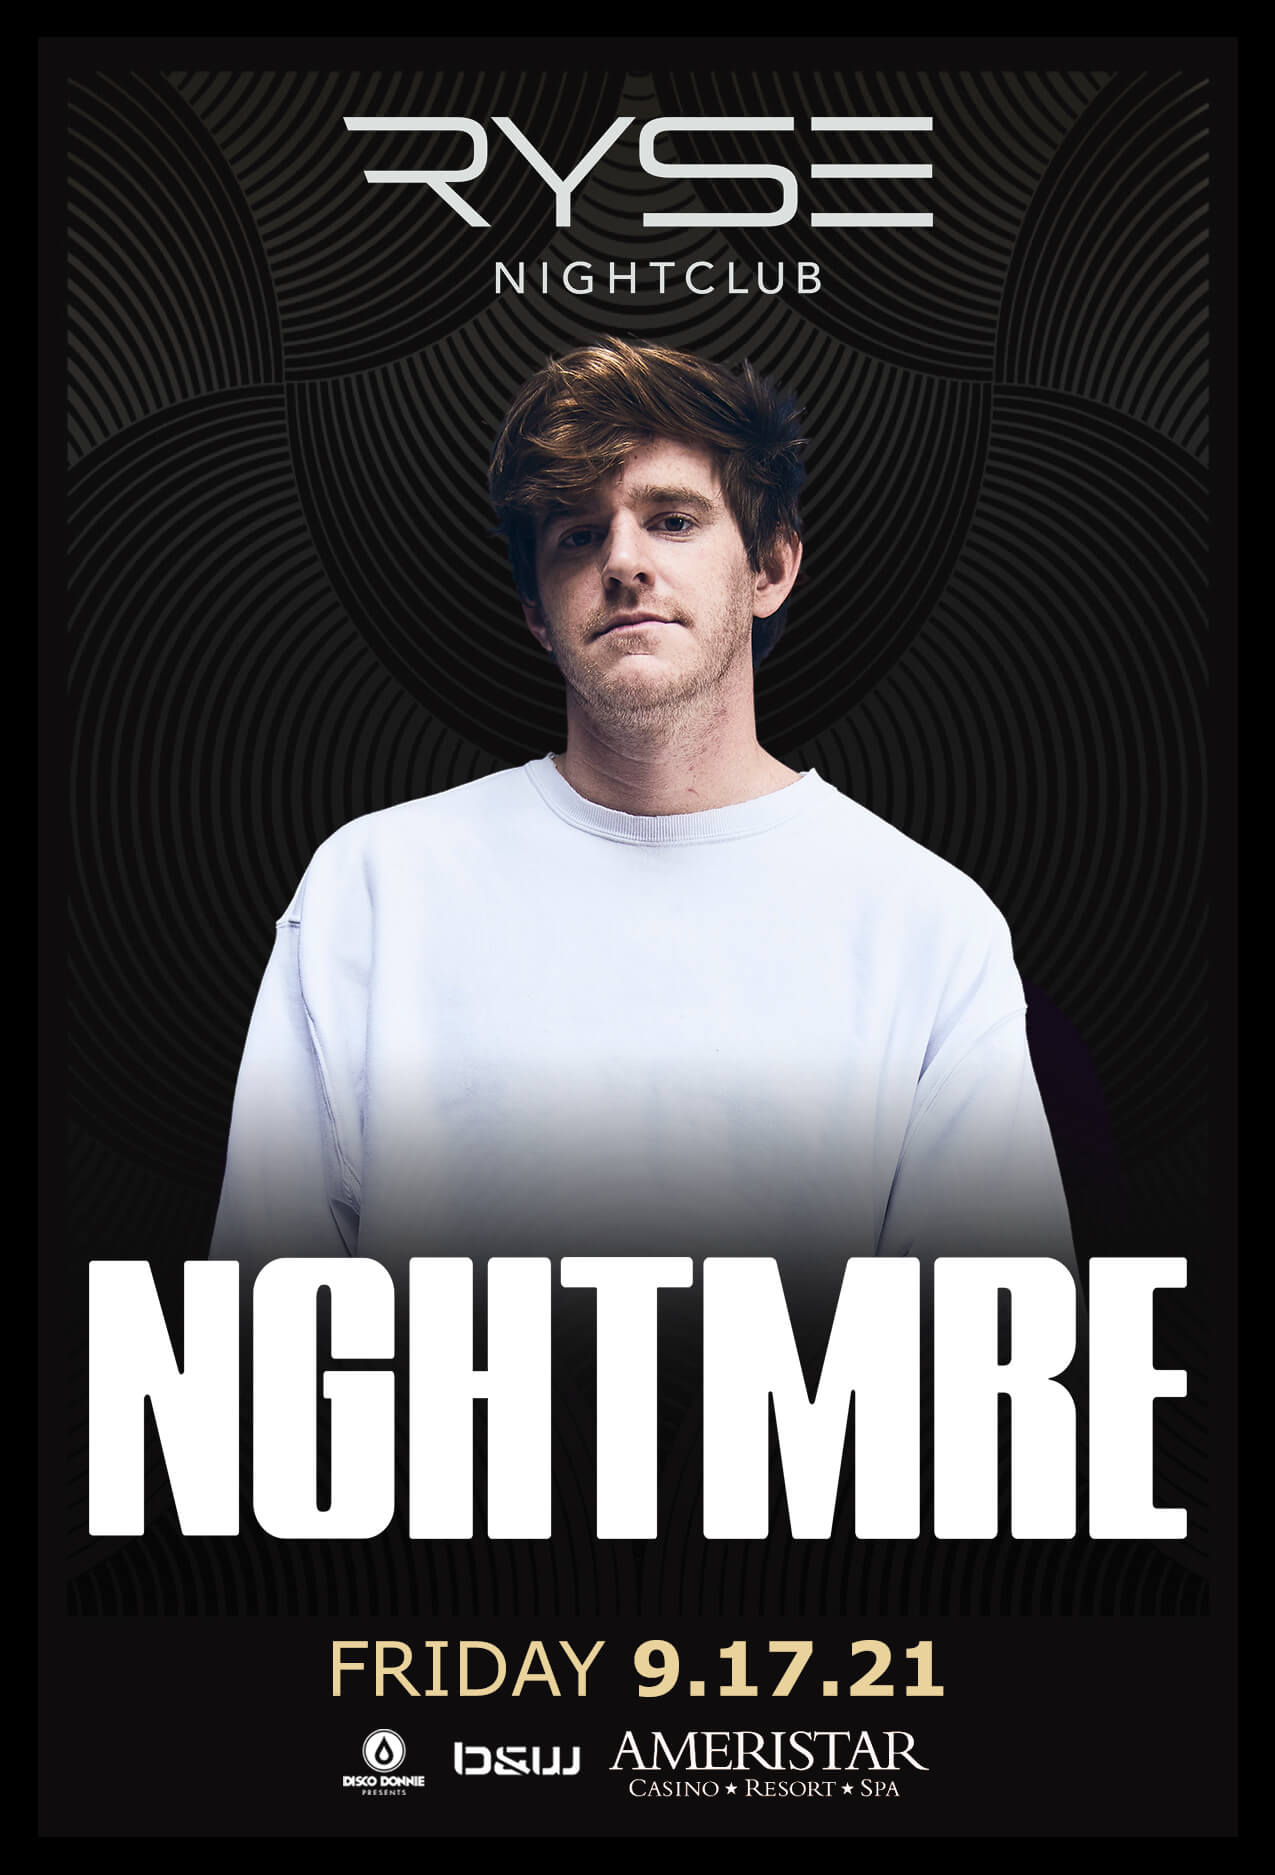 NGHTMRE in St Louis